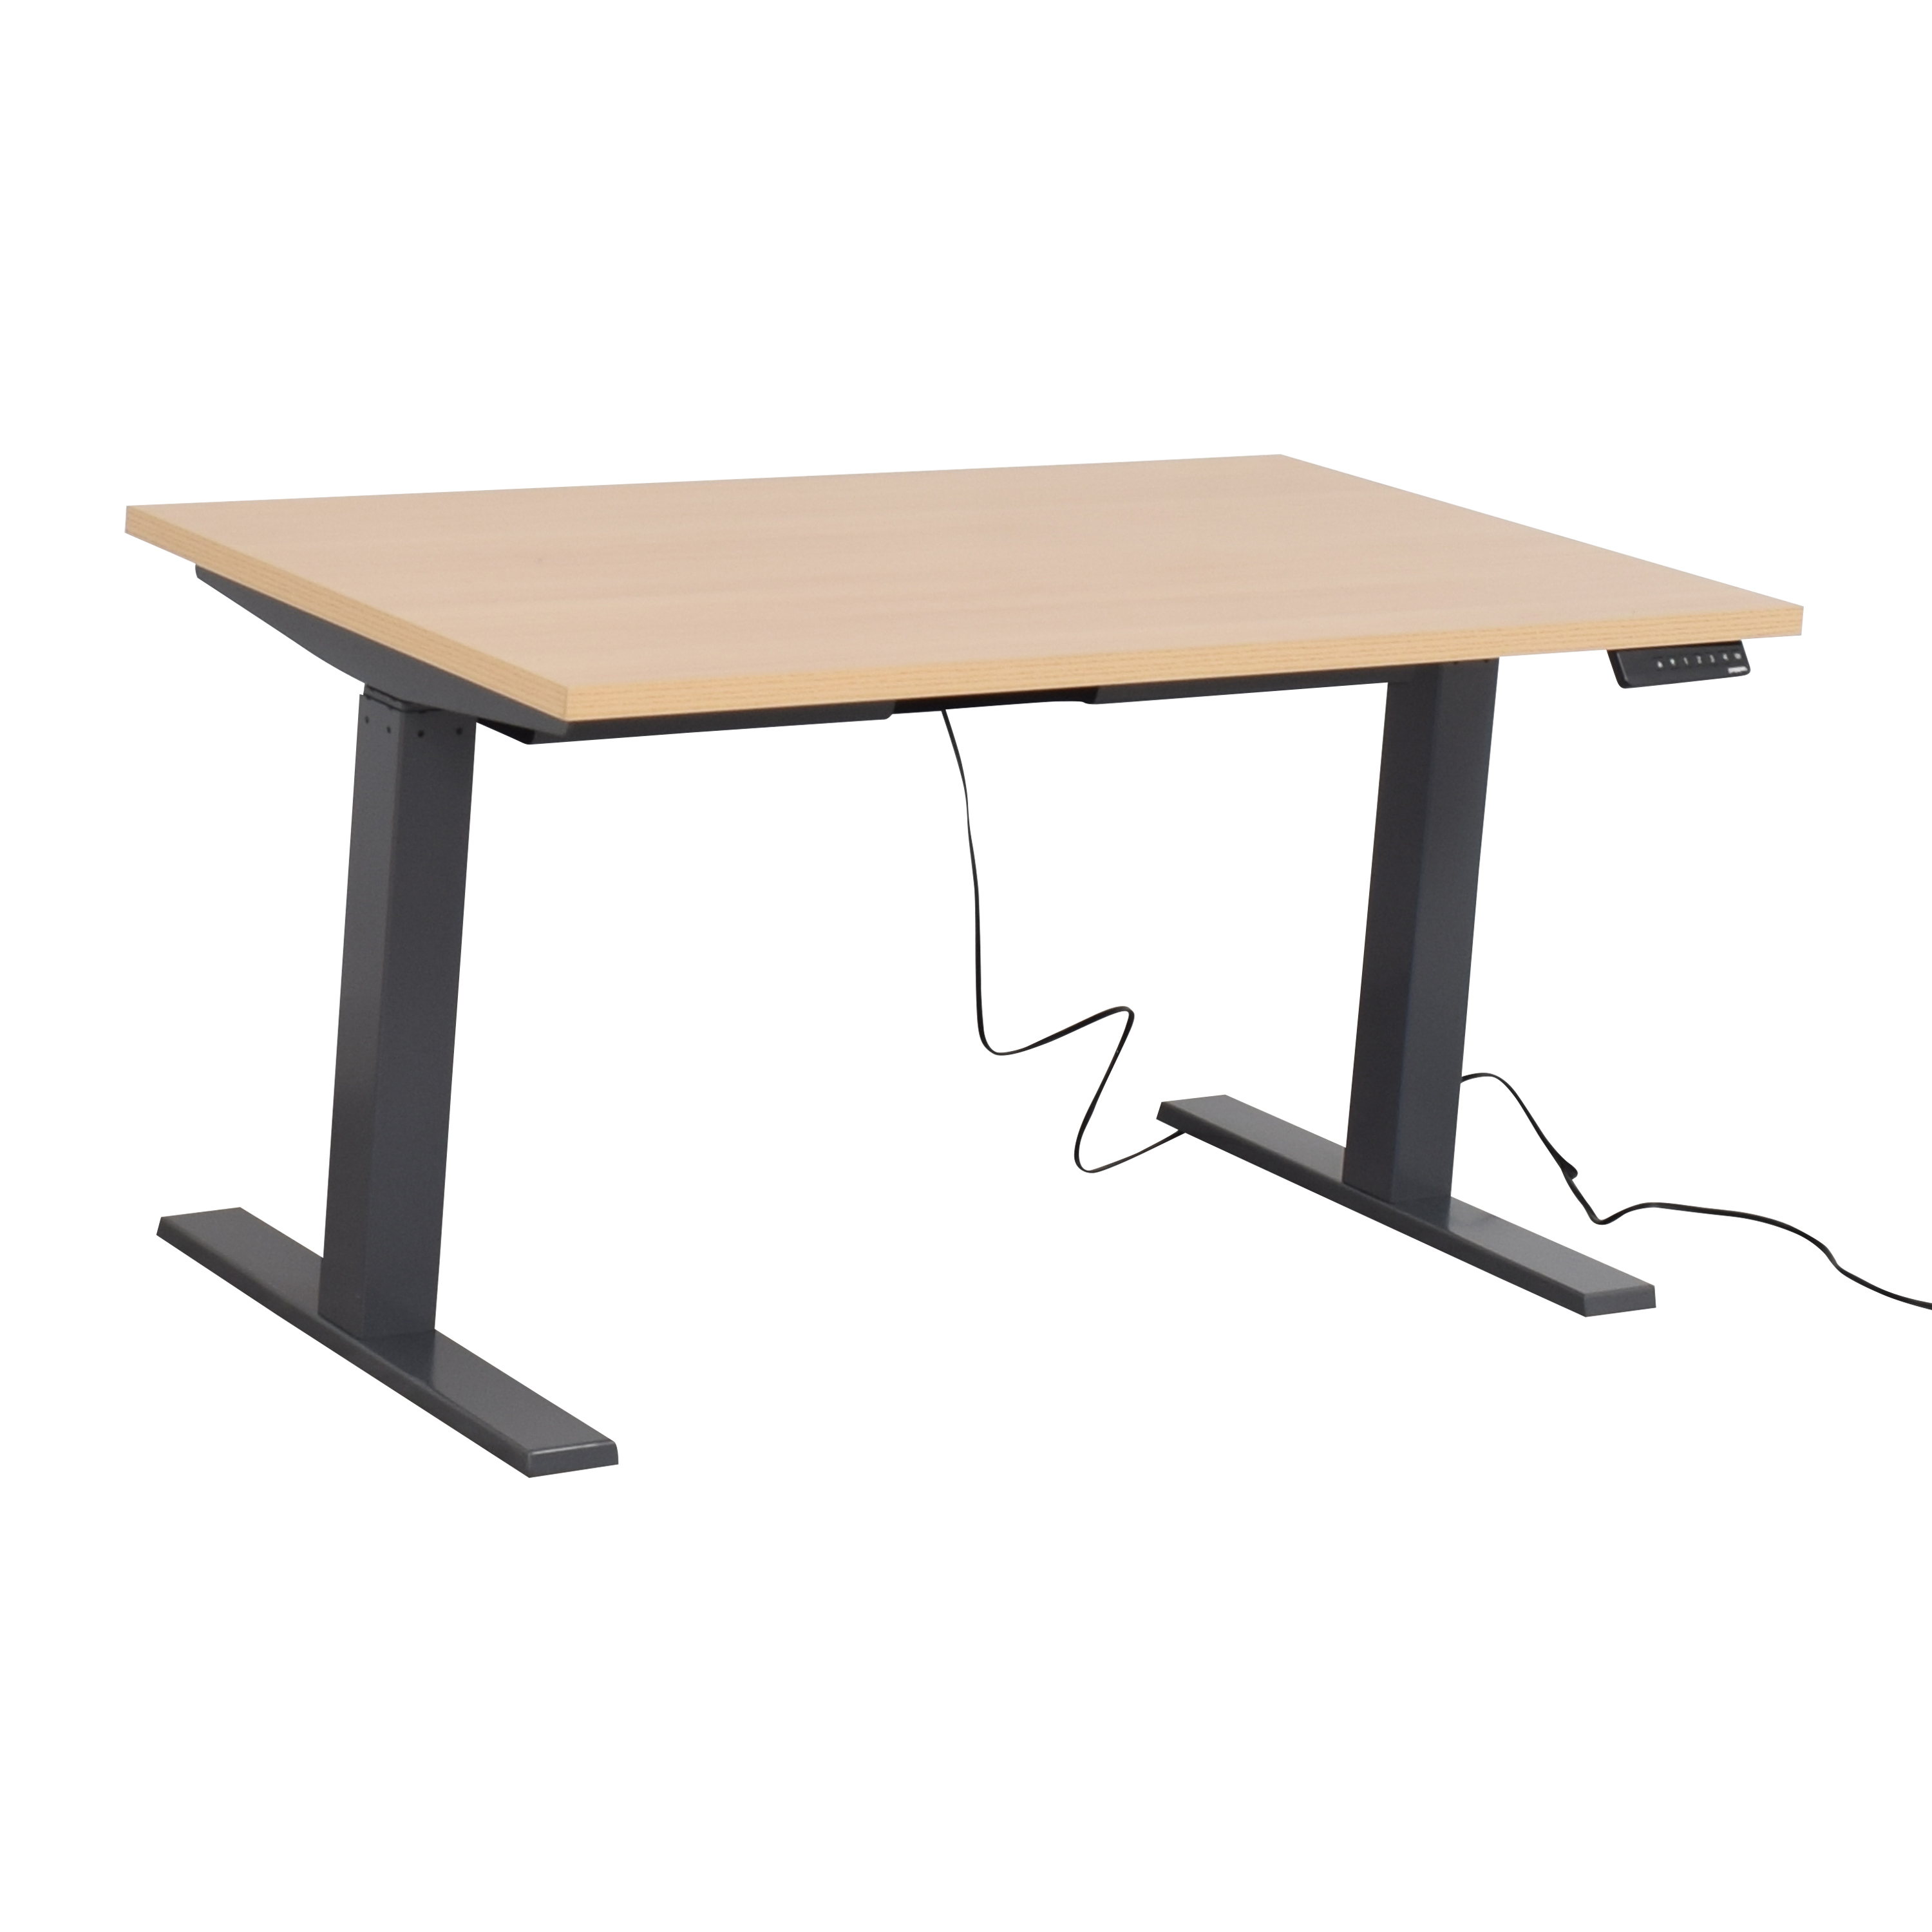 Poppin Poppin Series L Adjustable Height Desk used